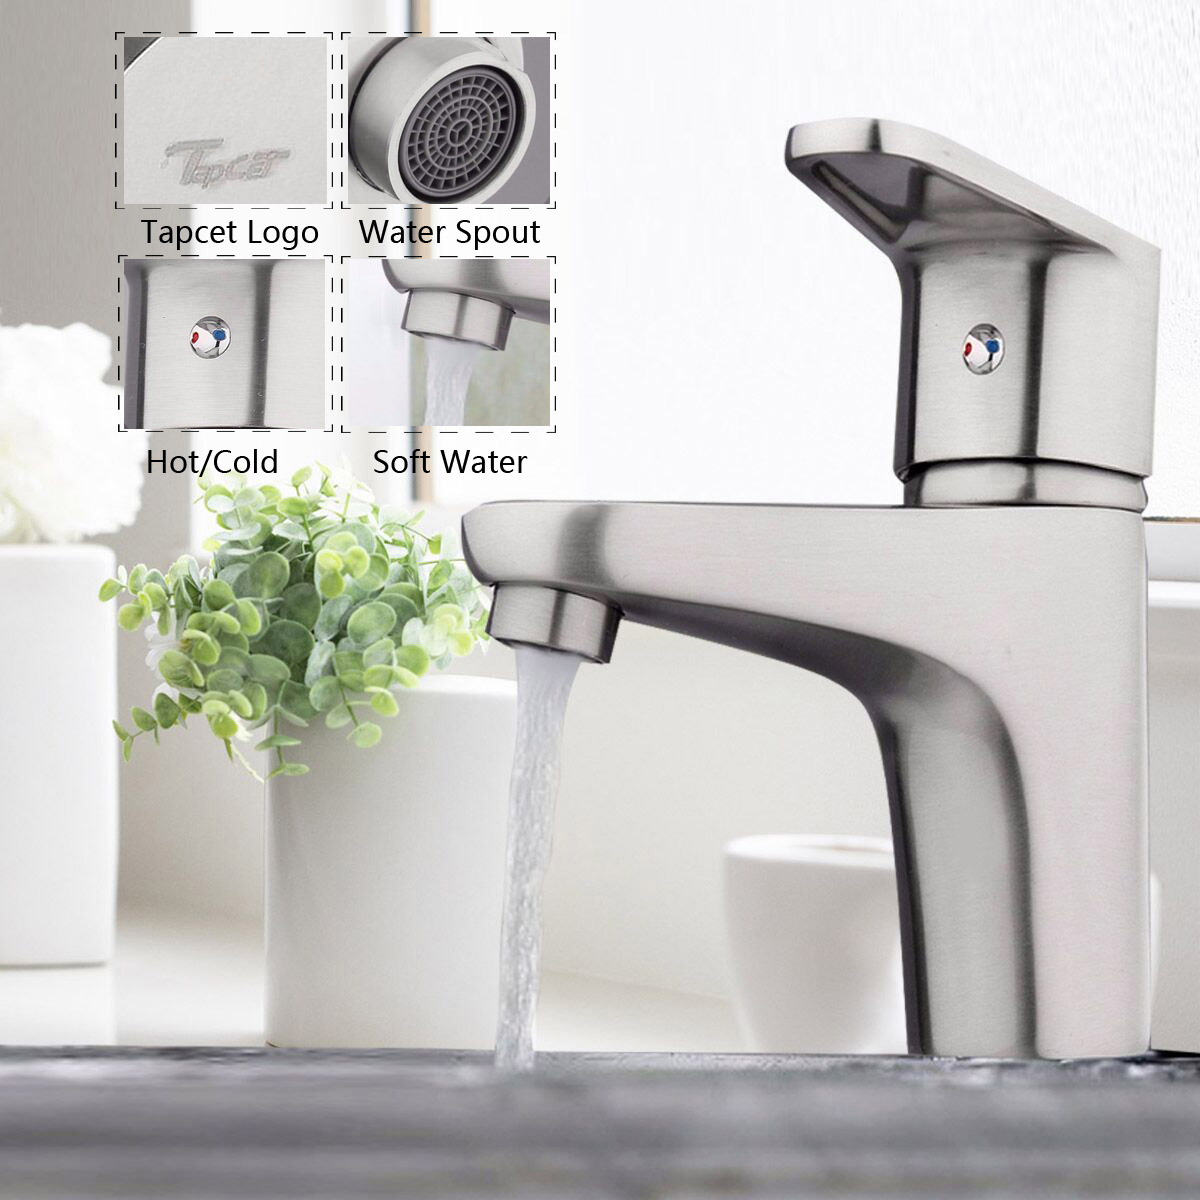 Xueqin Nickel Brushed Bathroom Sink Faucet Taps Single Handle Single Hole Basin Mixer Tap Bathtub Kitchen Faucet Cold And Hot nickel brushed bathroom lavatory faucet hot and cold single lever ceramic handle bathroom basin faucet sink mixer tap